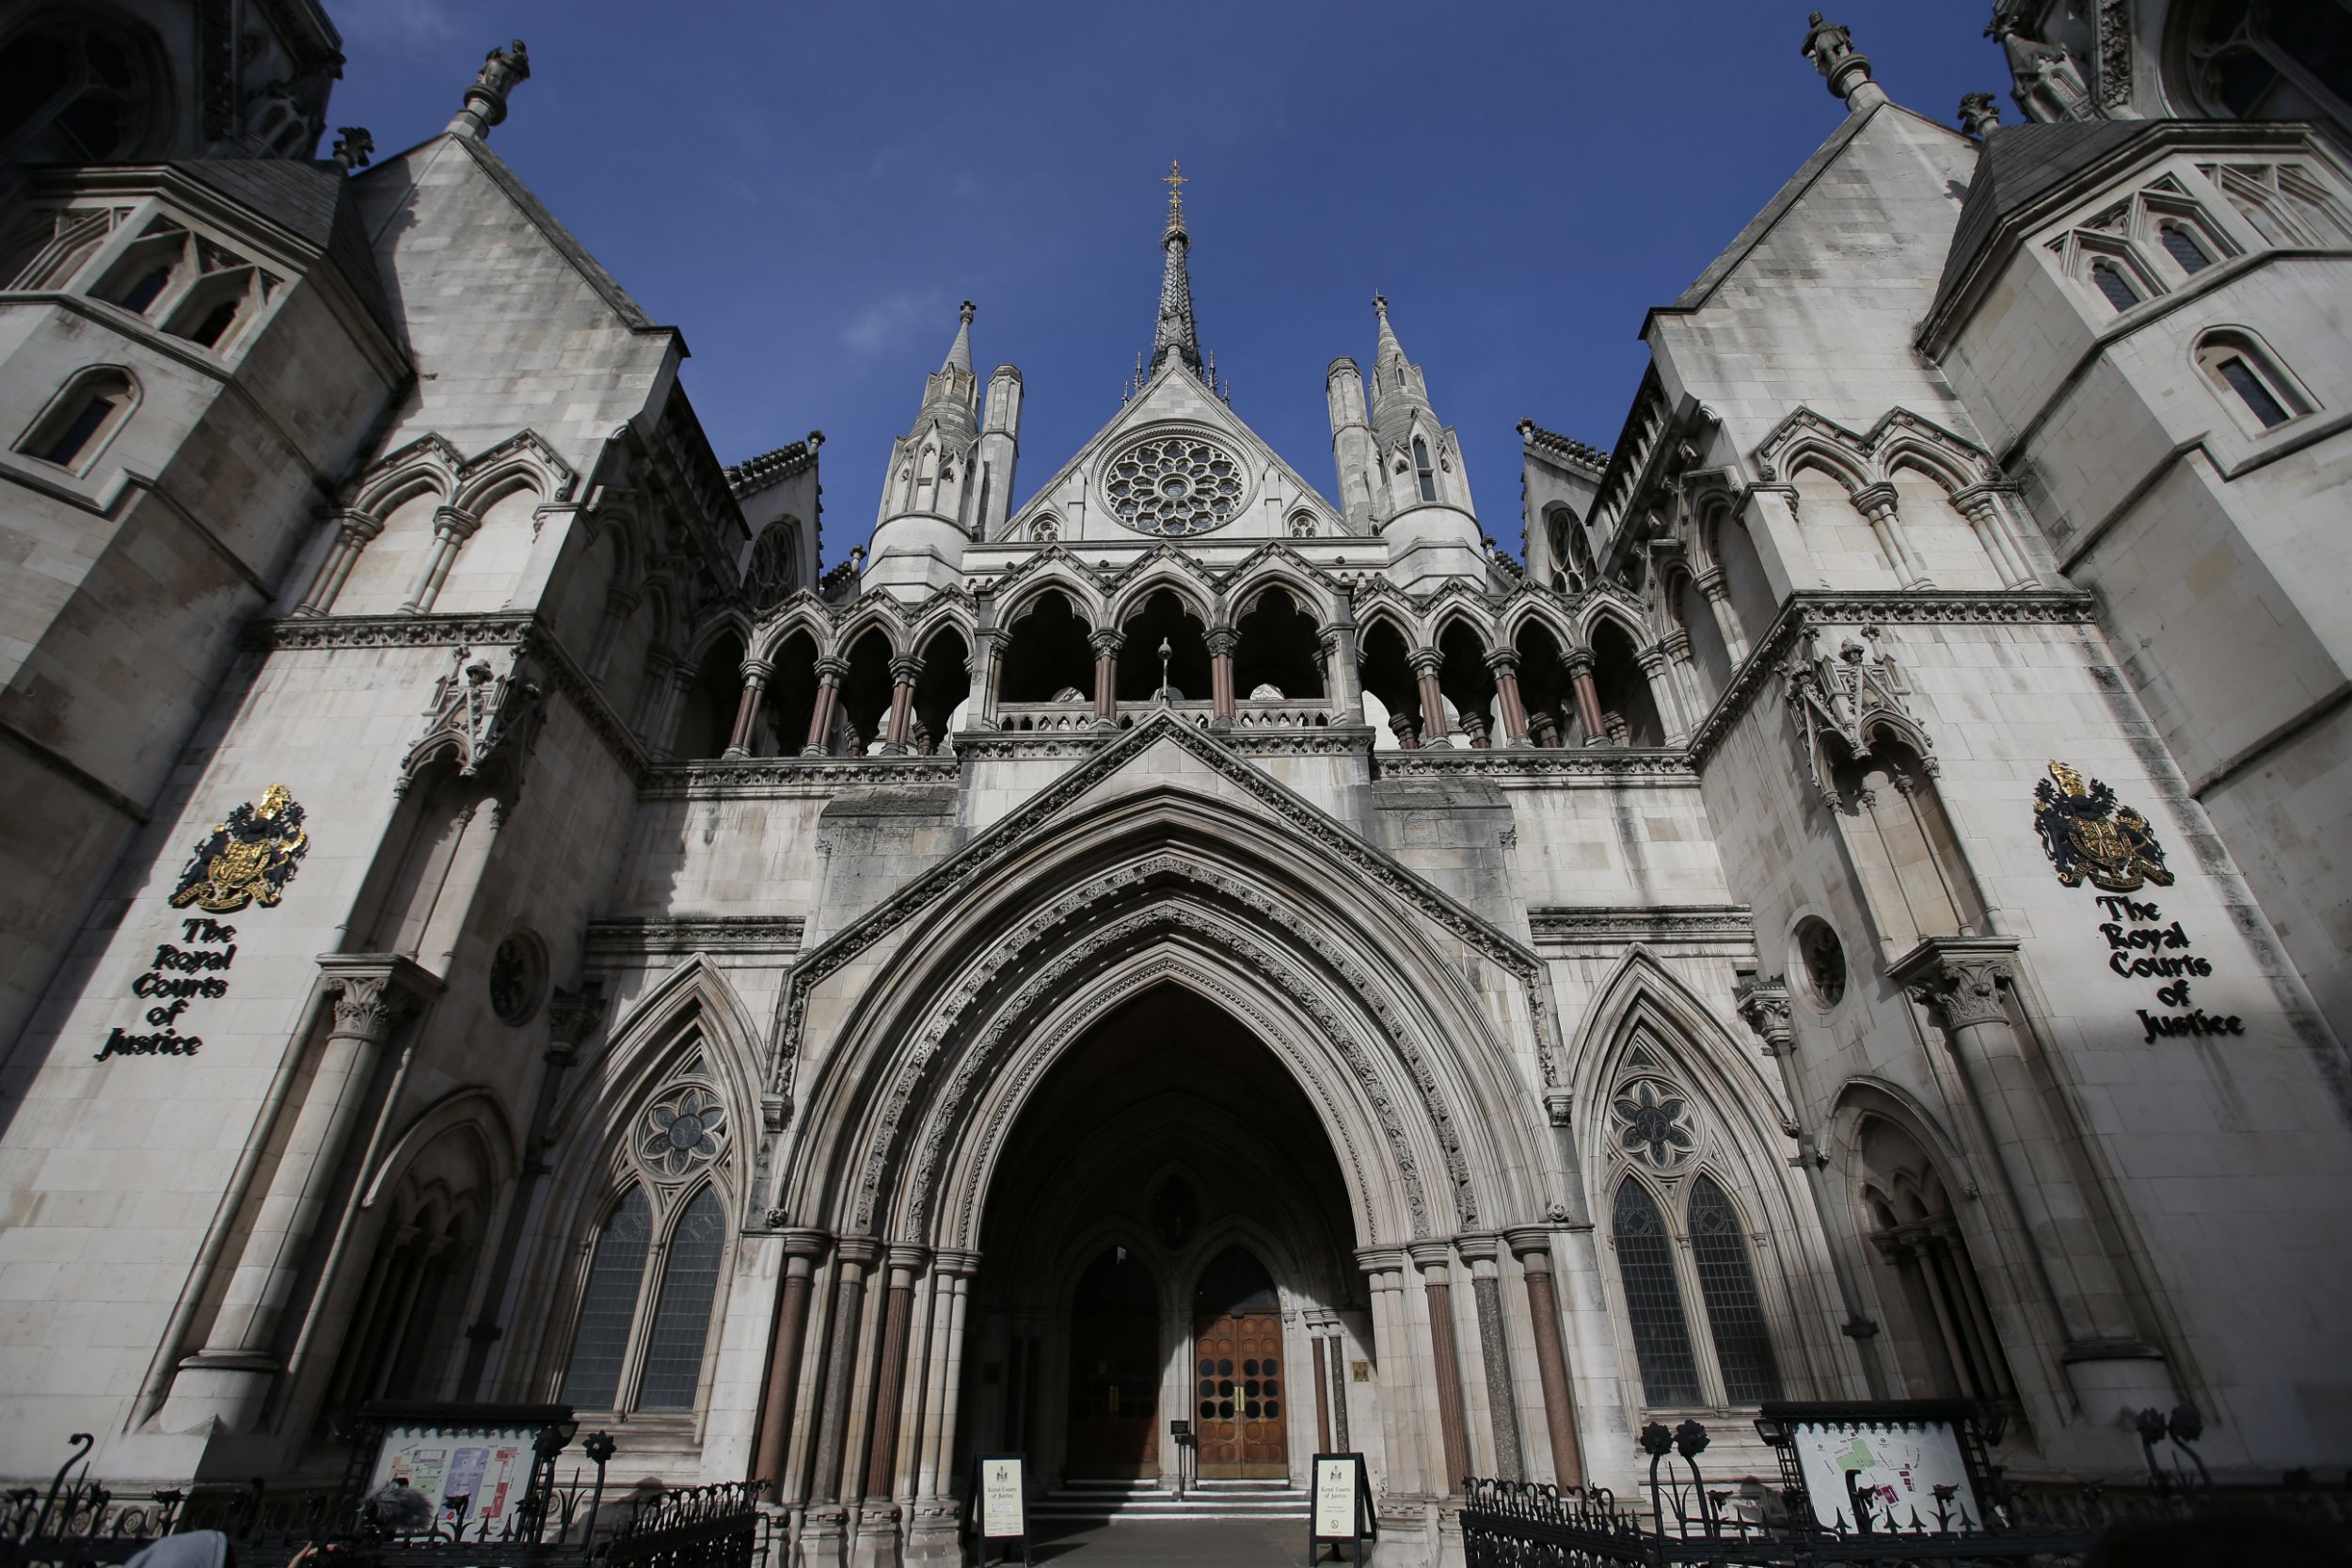 Man worth £34,000,000 paid his lawyers £100,000 to say he can't afford to pay ex-wife £200,000